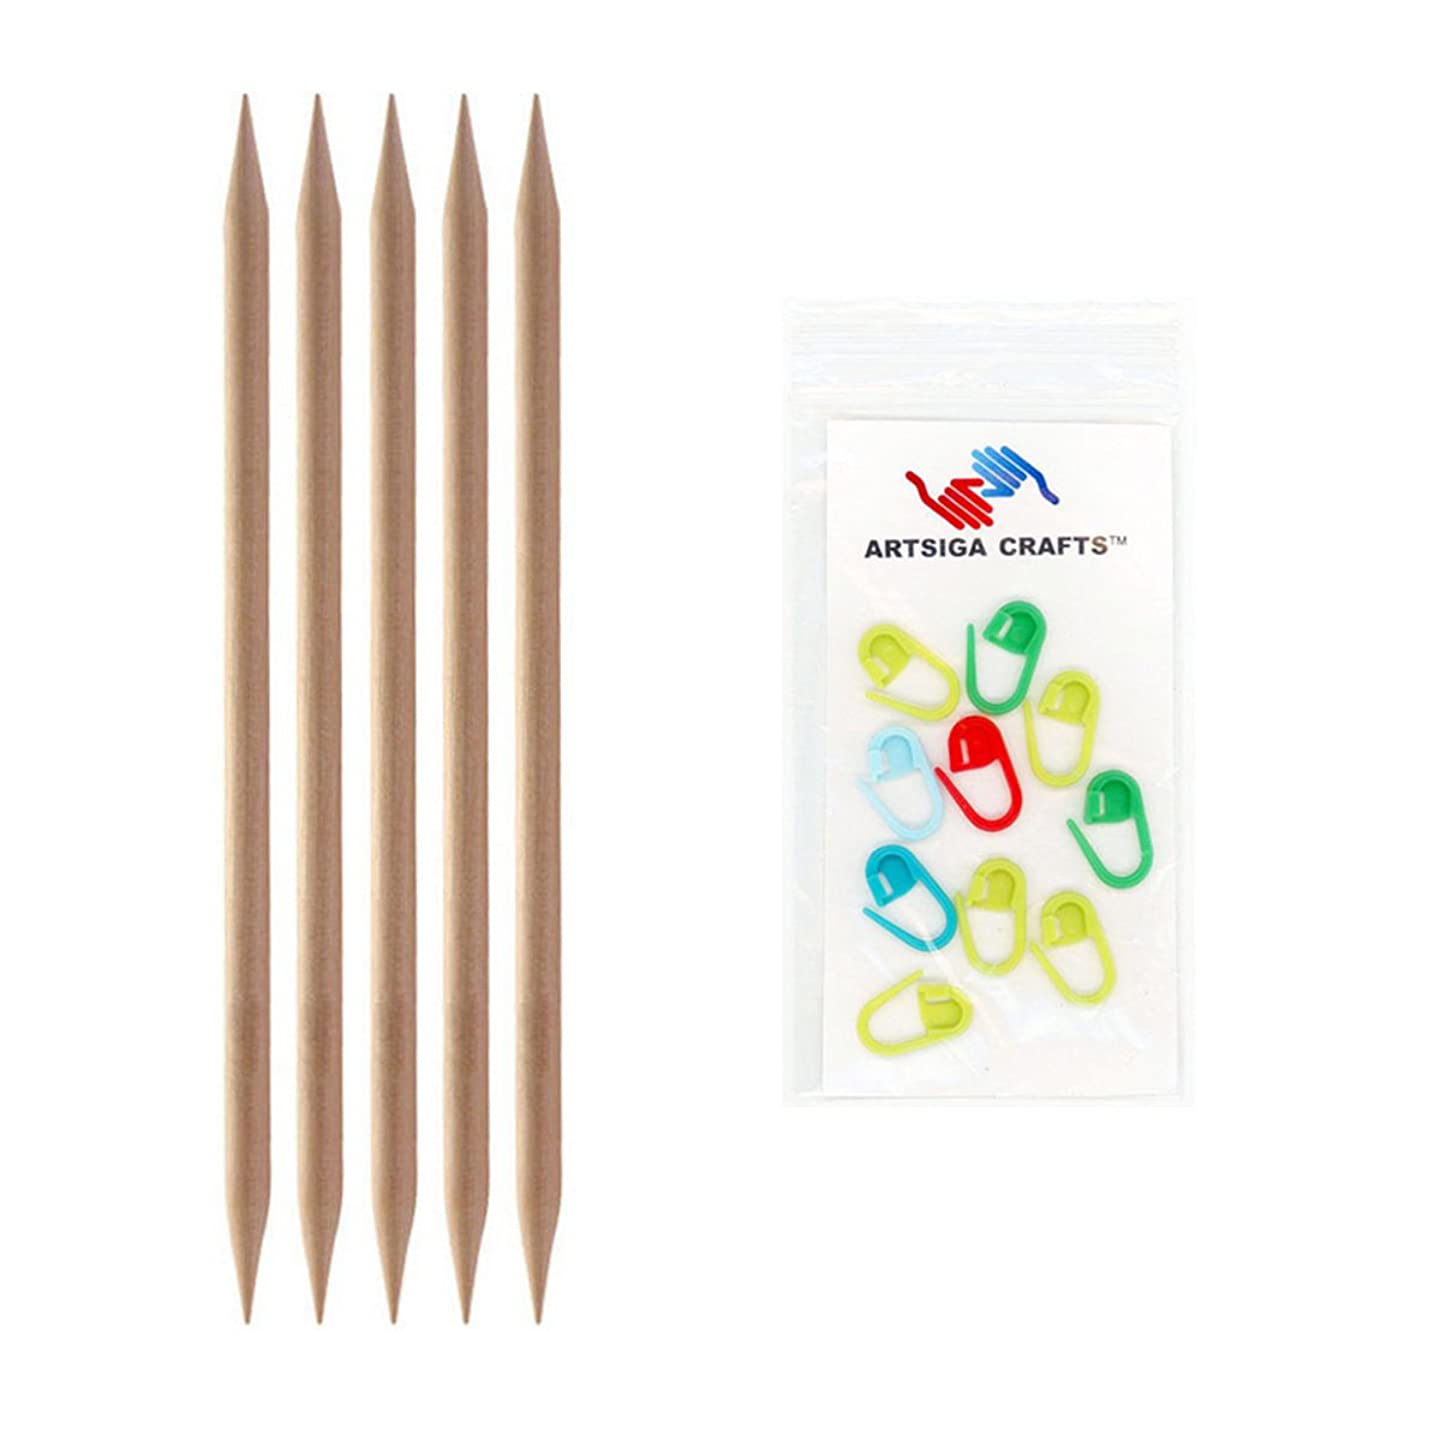 Knitter's Pride Basix Double Pointed 8-inch (20cm) Knitting Needles Size 10 (6.0mm) Bundle with 10 Artsiga Crafts Stitch Markers 400111